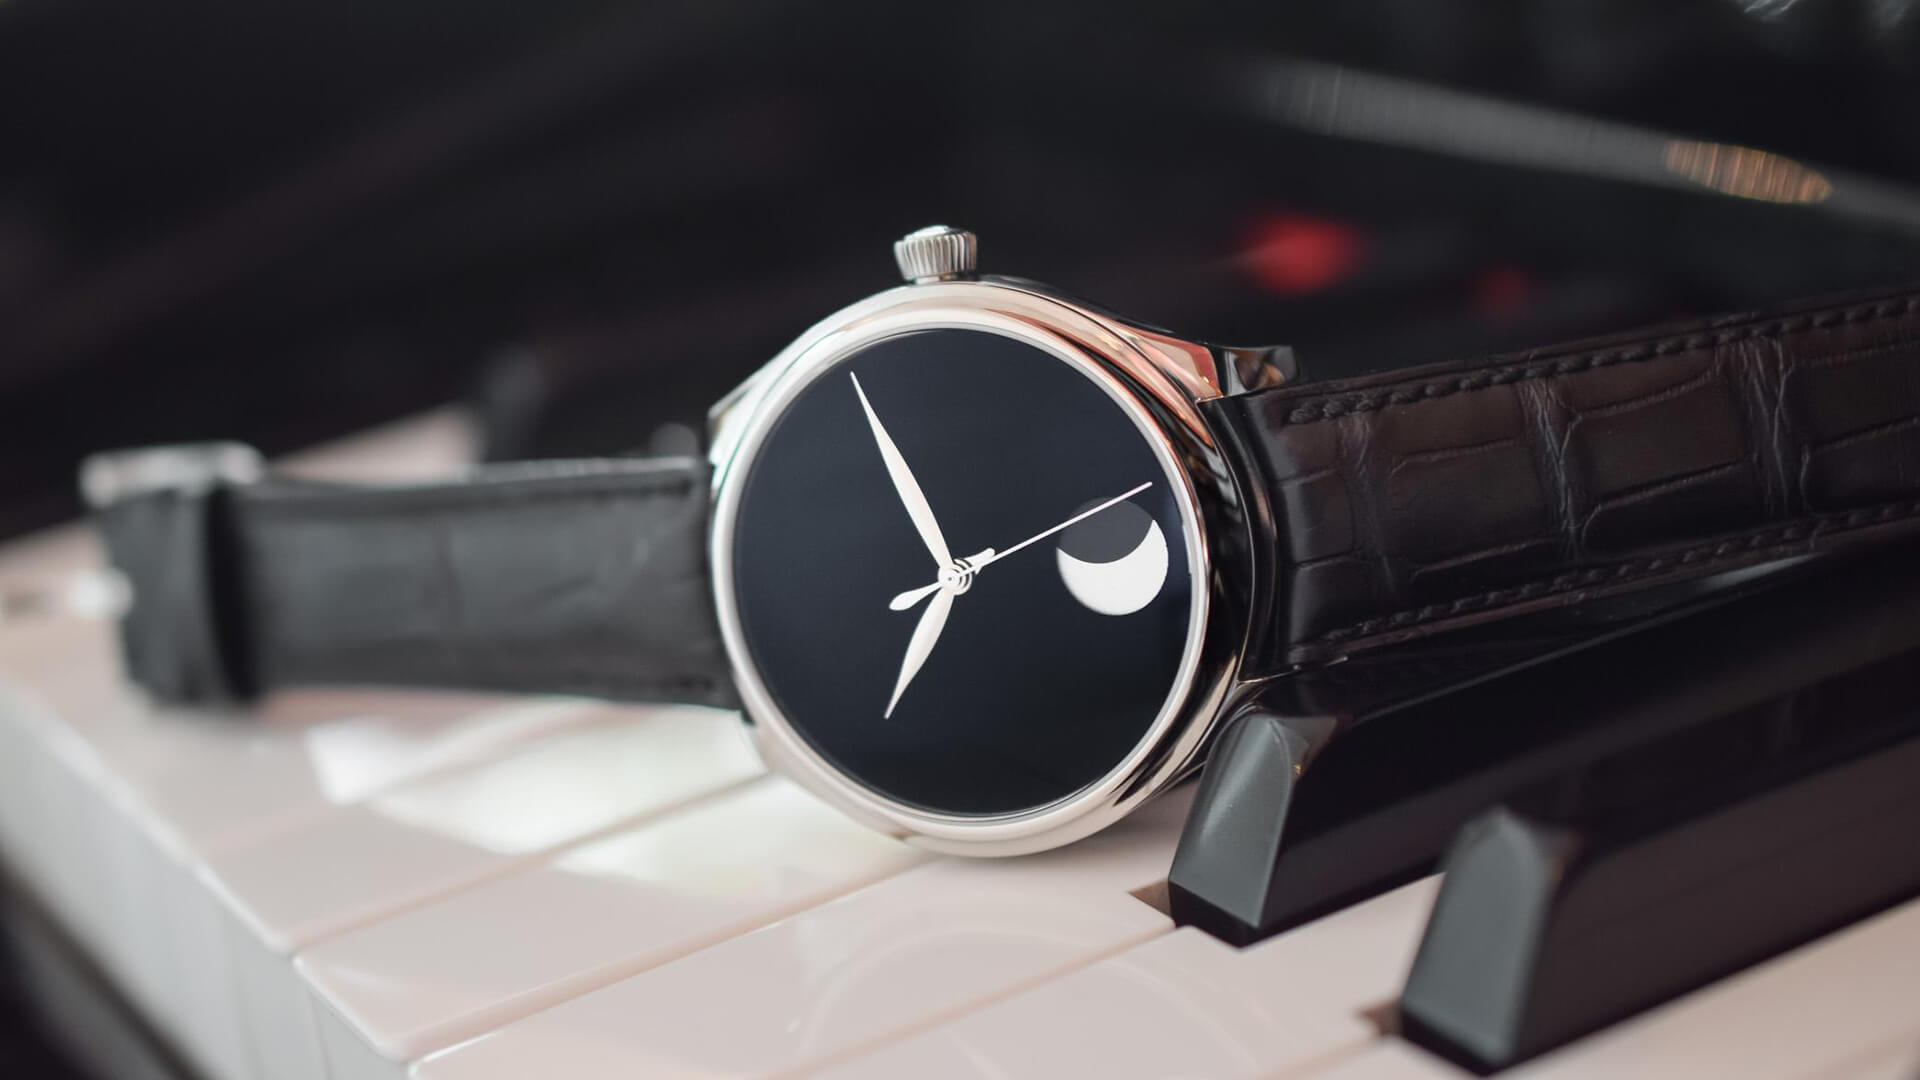 From The Press: The Blackest Shade of Black – The H. Moser & Cie Endeavour Perpetual Moon Concept VantaBlack